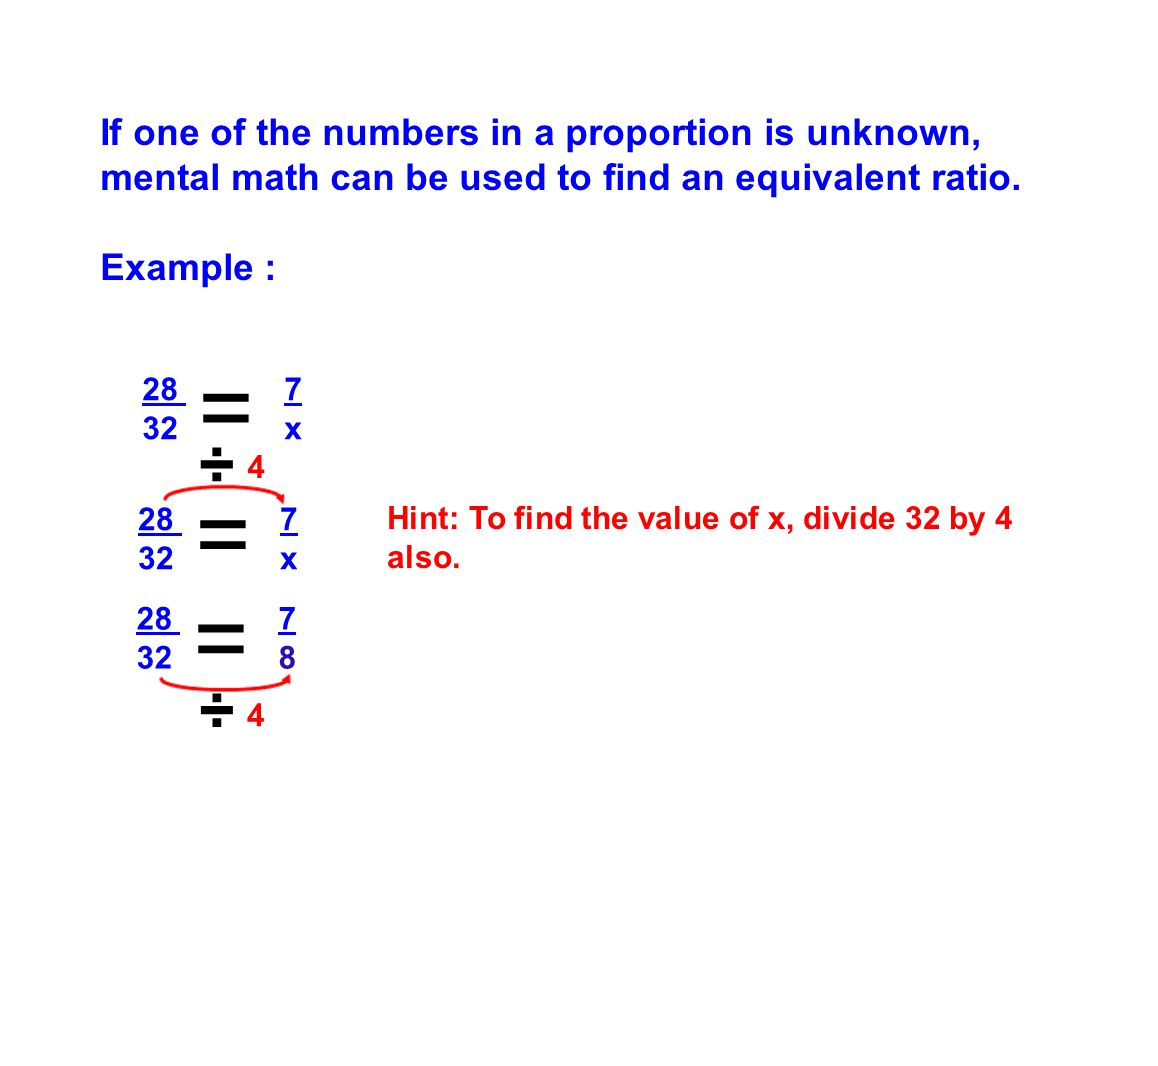 If one of the numbers in a proportion is unknown, mental math can be used to find an equivalent ratio.